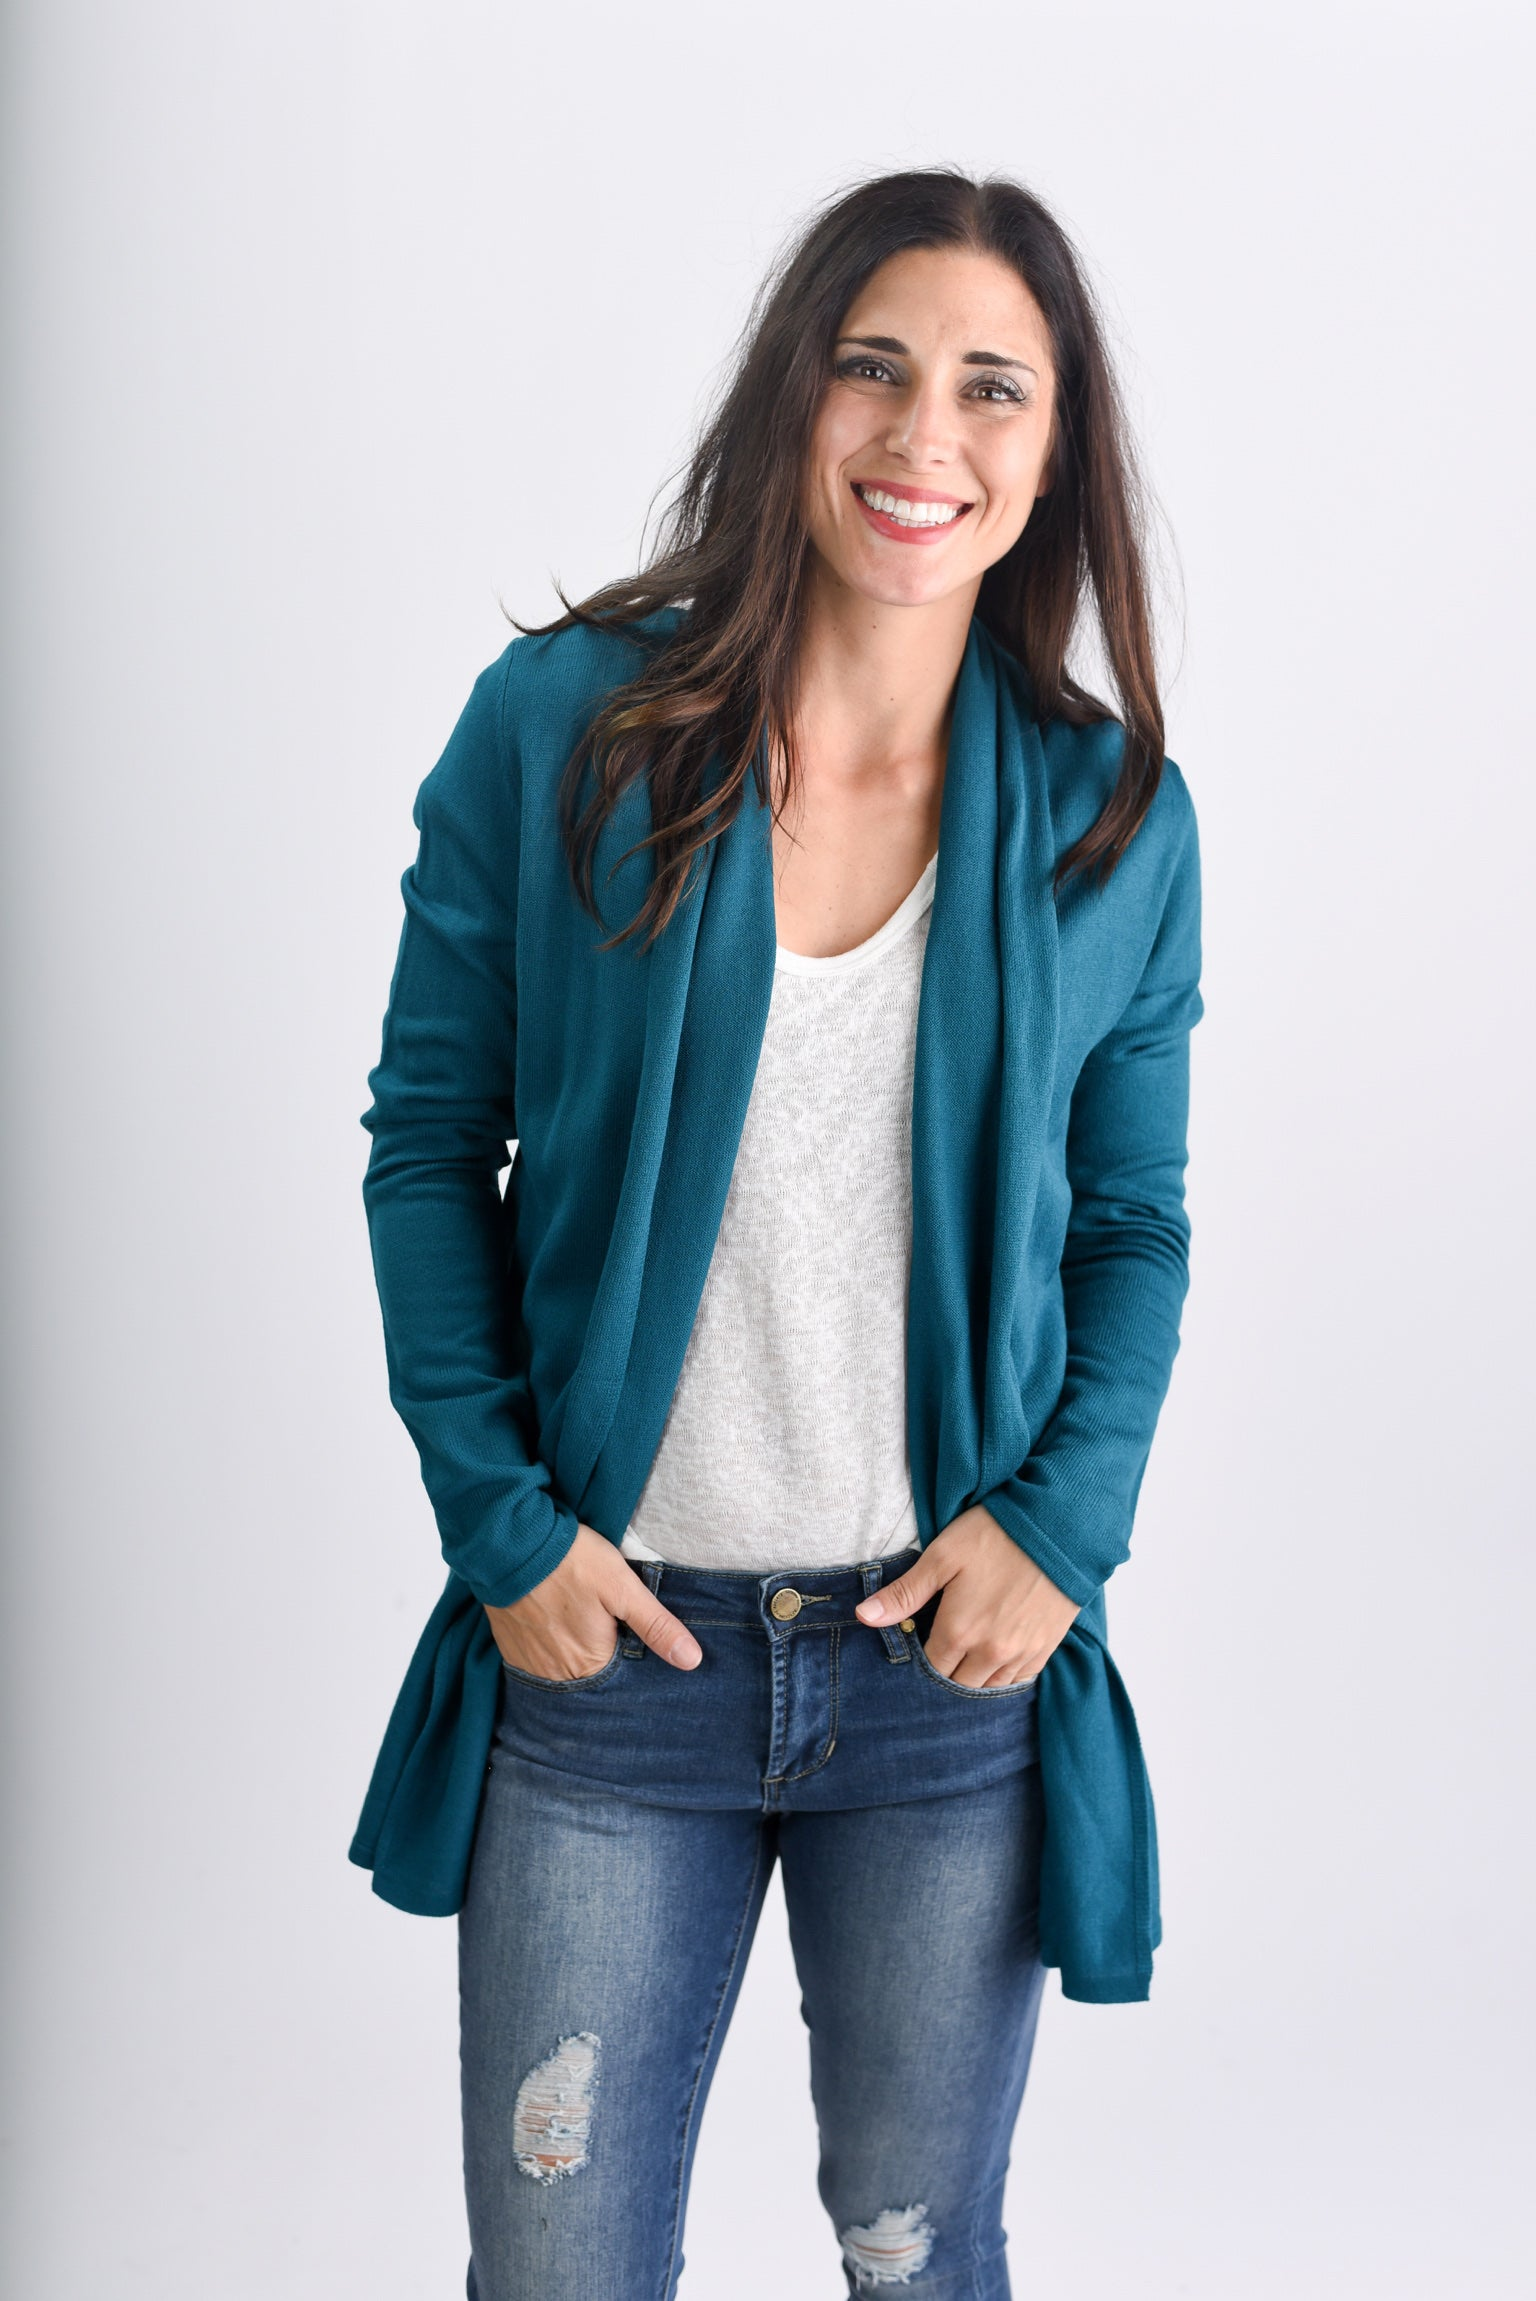 Holding Out For You Lightweight Cardigan- Teal